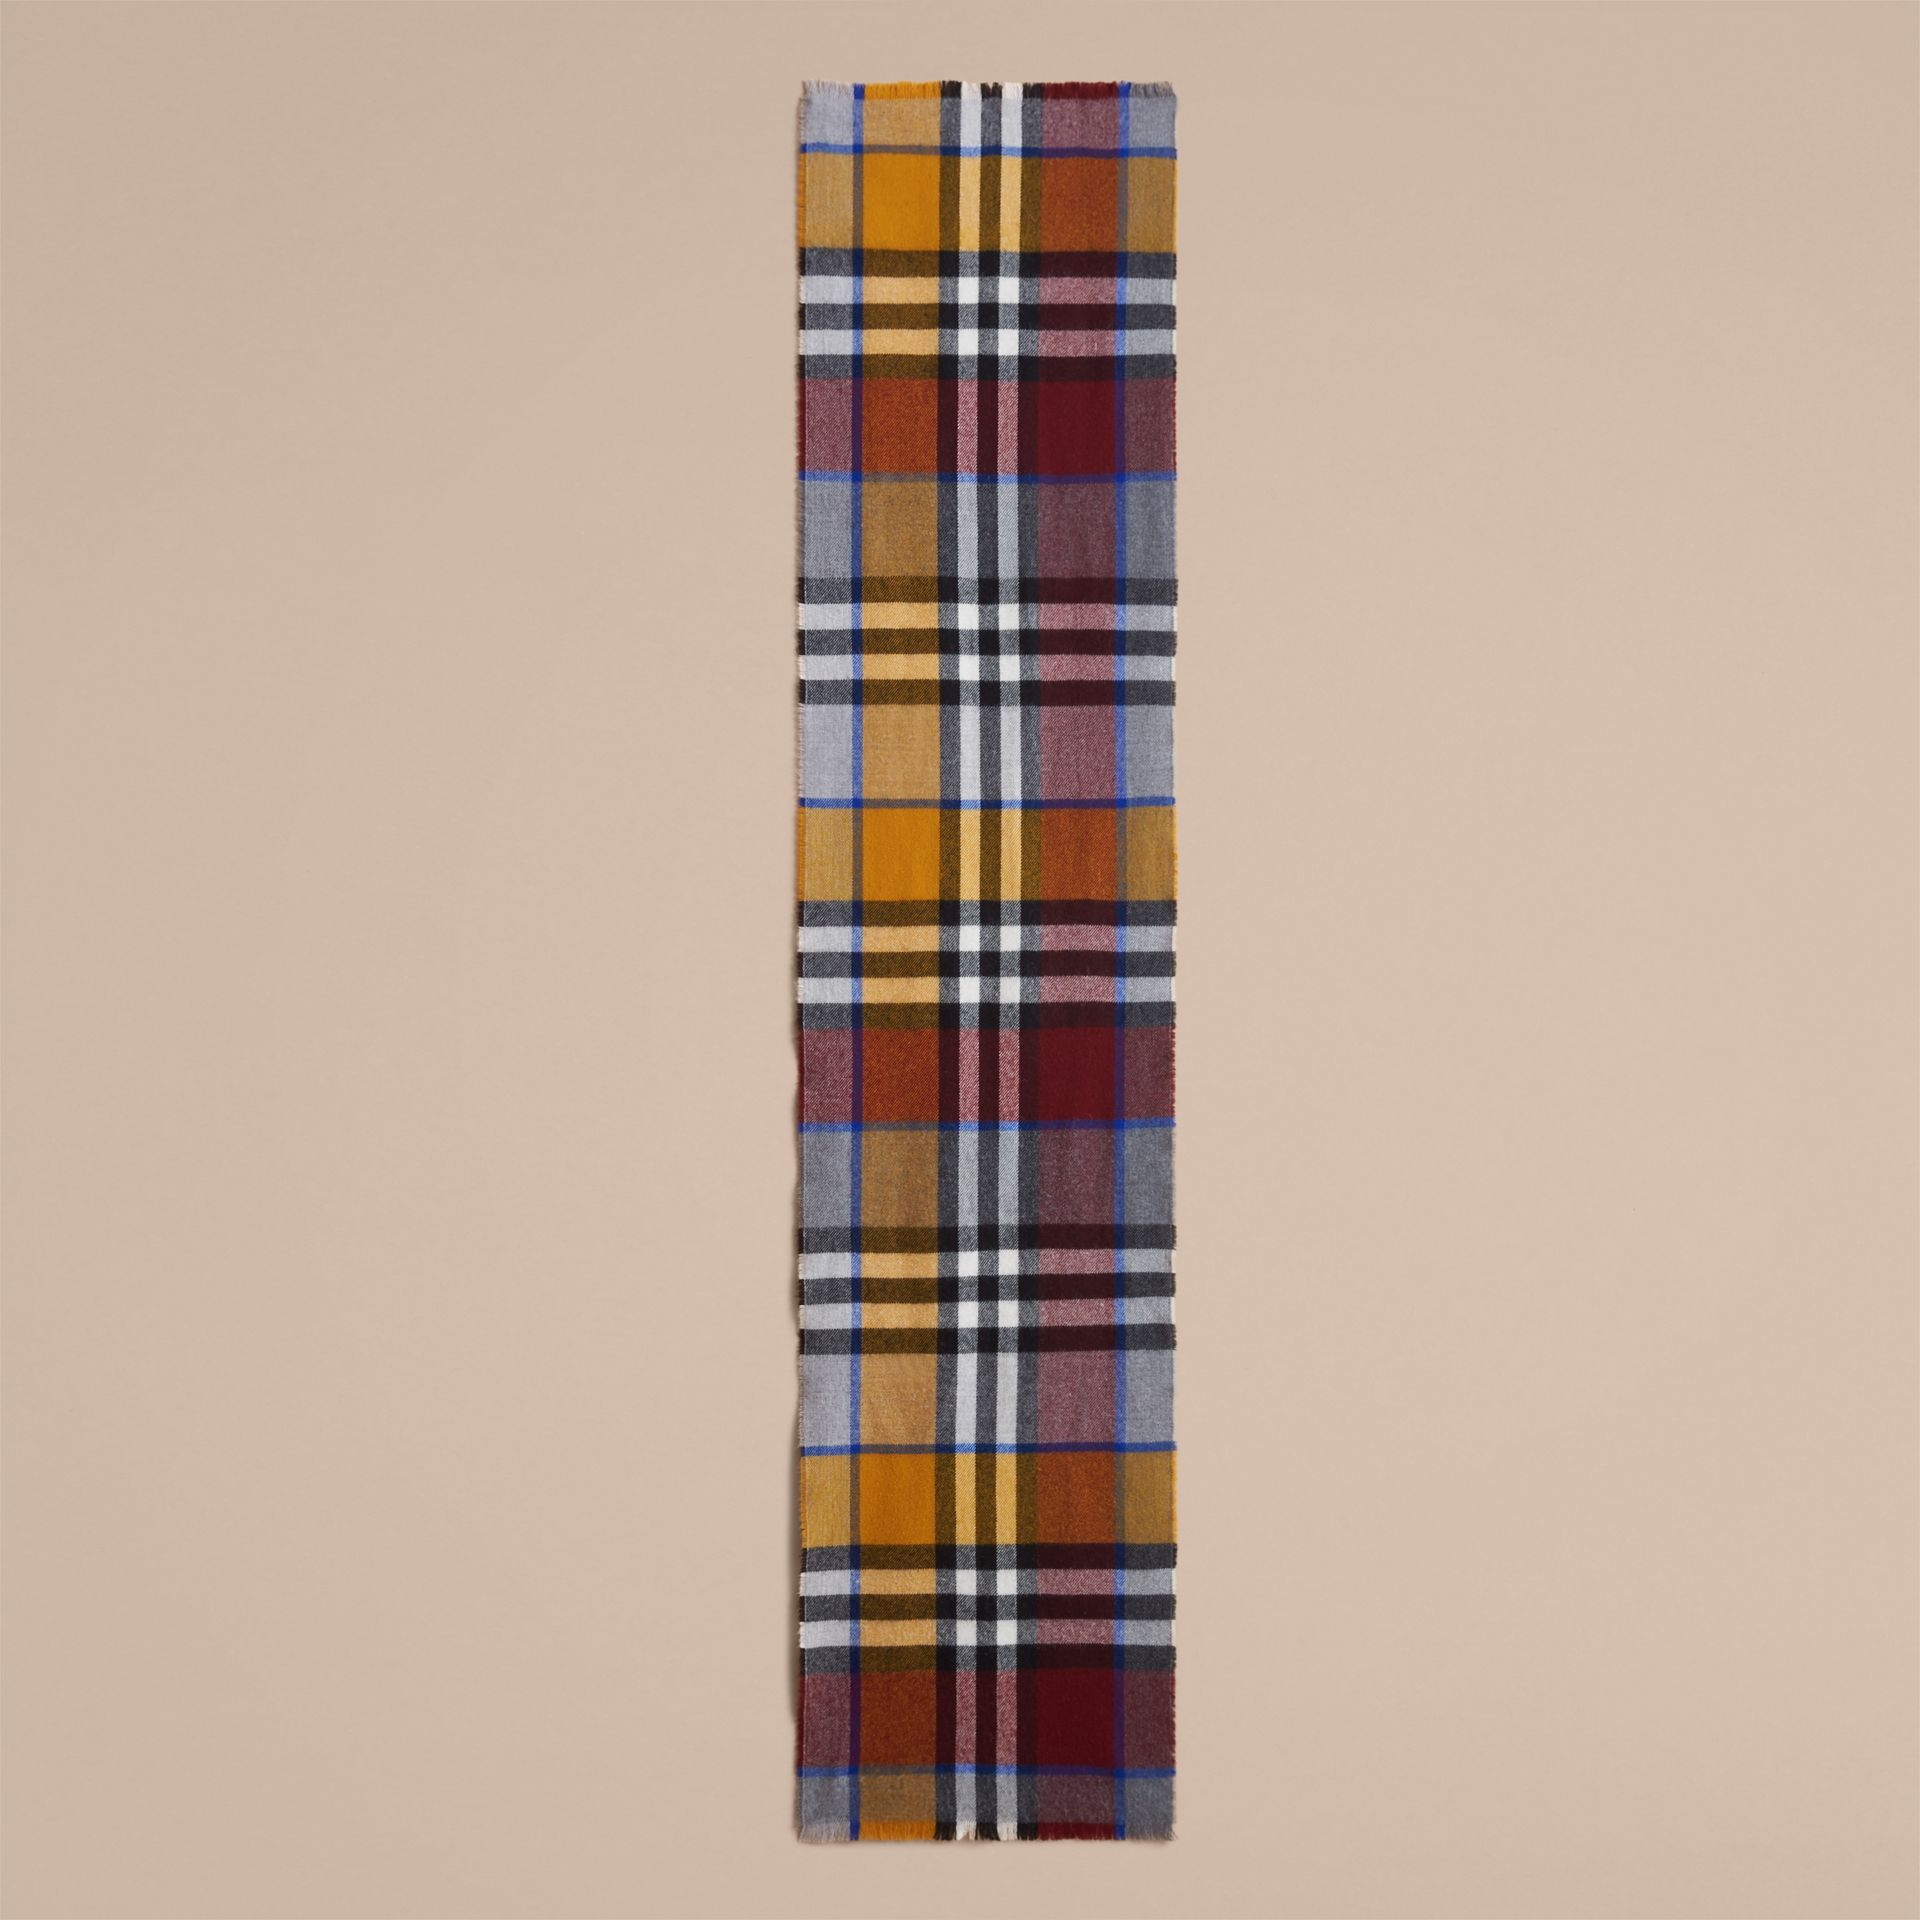 Overdyed Exploded Check Merino Wool Scarf in Burgndy/ochre Yellow | Burberry Canada - gallery image 3